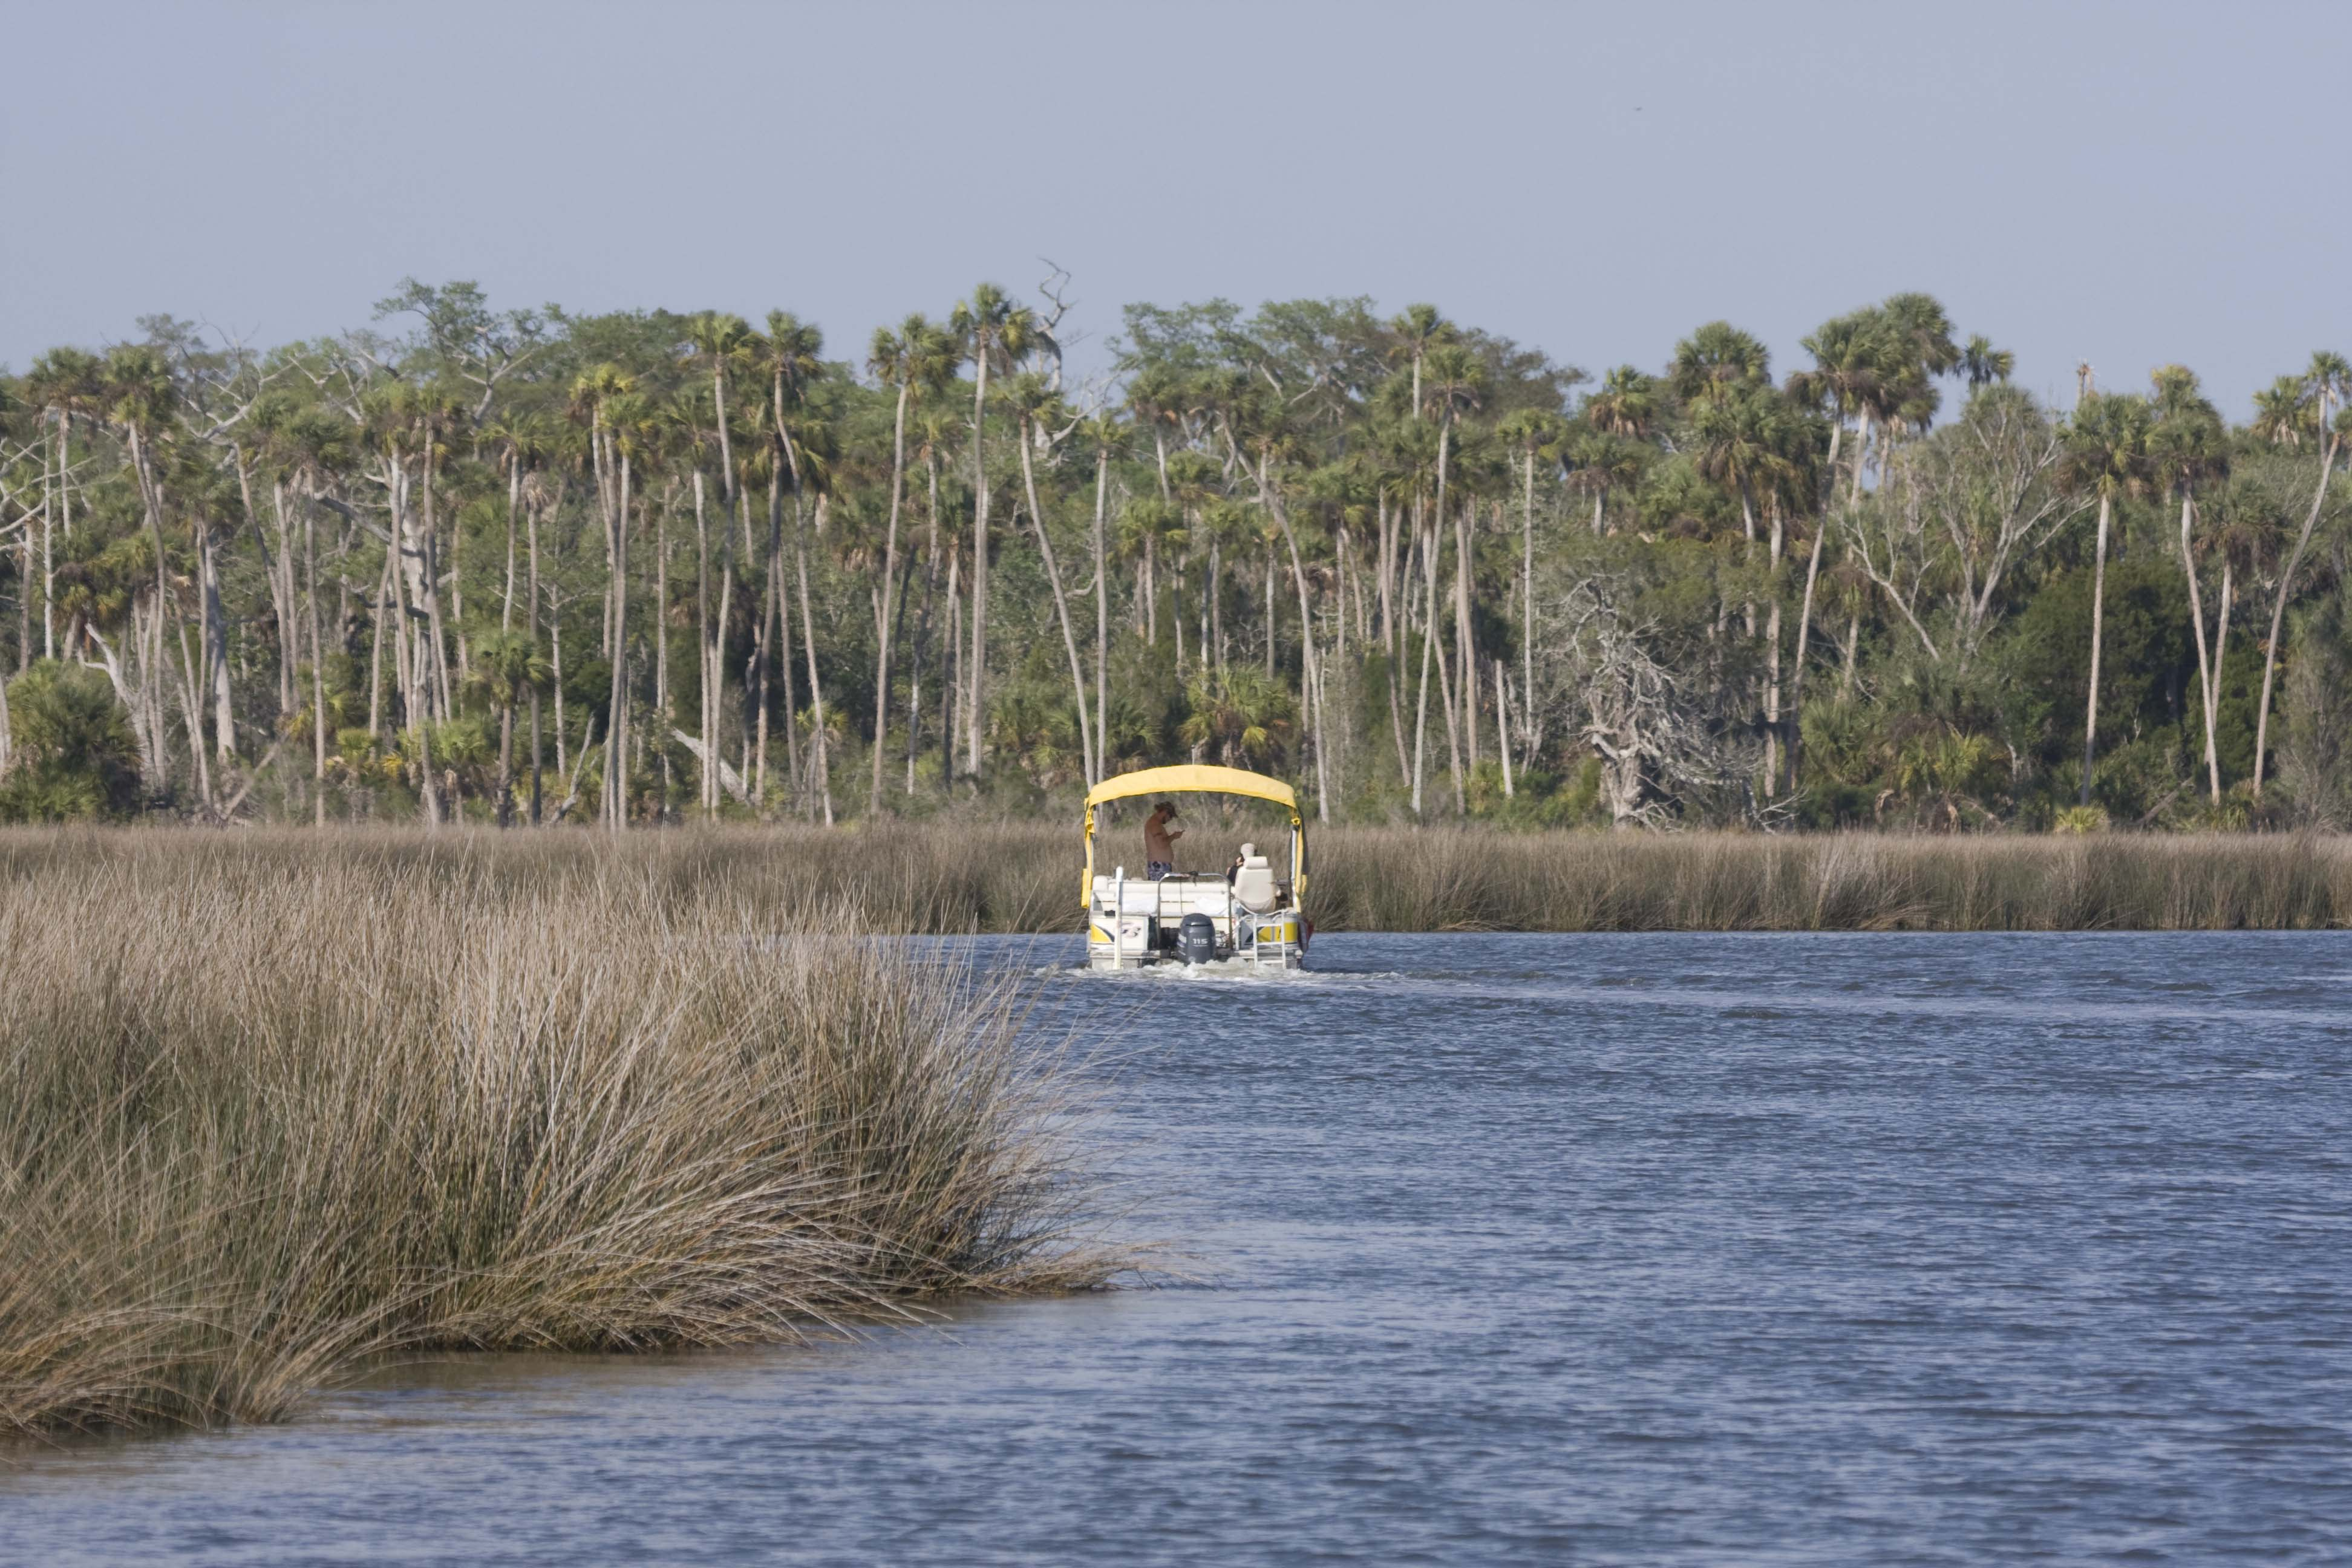 Boating on the gorgeous Withlacoochee River.